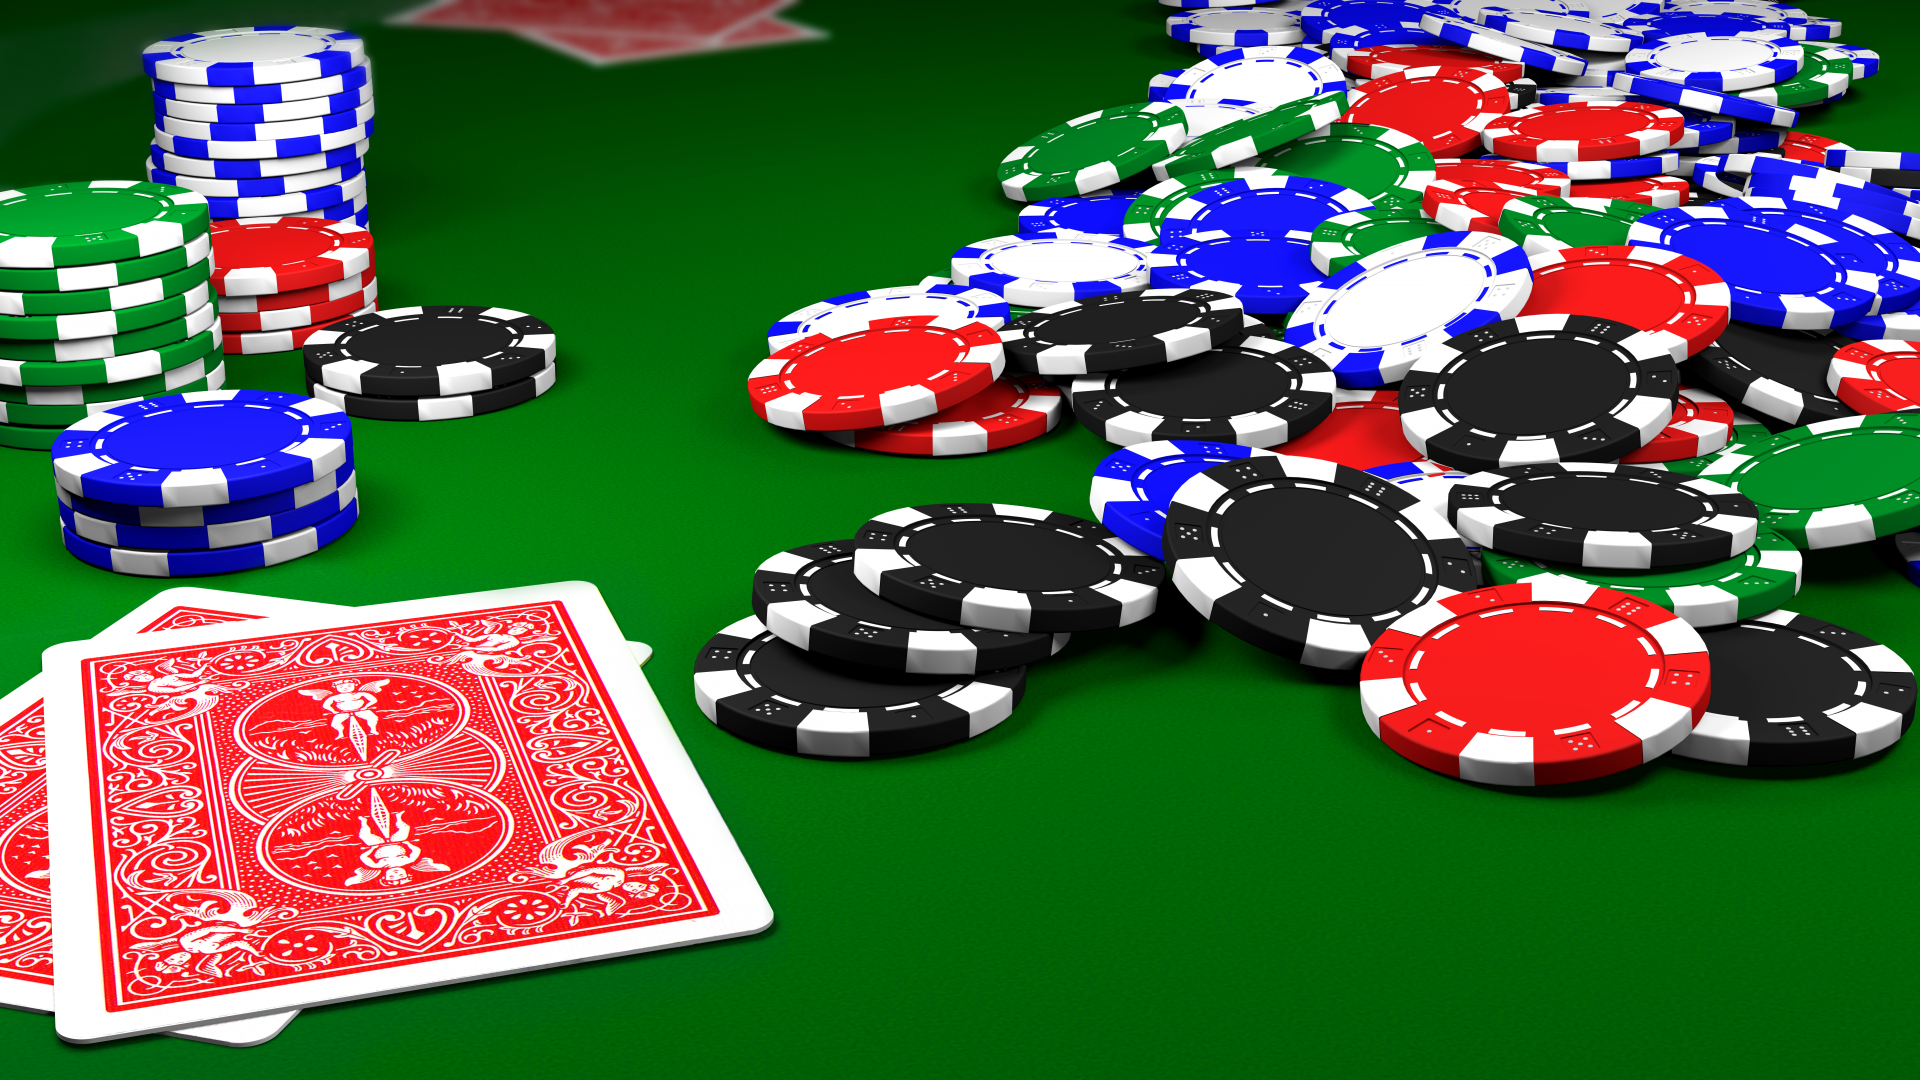 Poker Table Wallpapers - Top Free Poker Table Backgrounds - WallpaperAccess